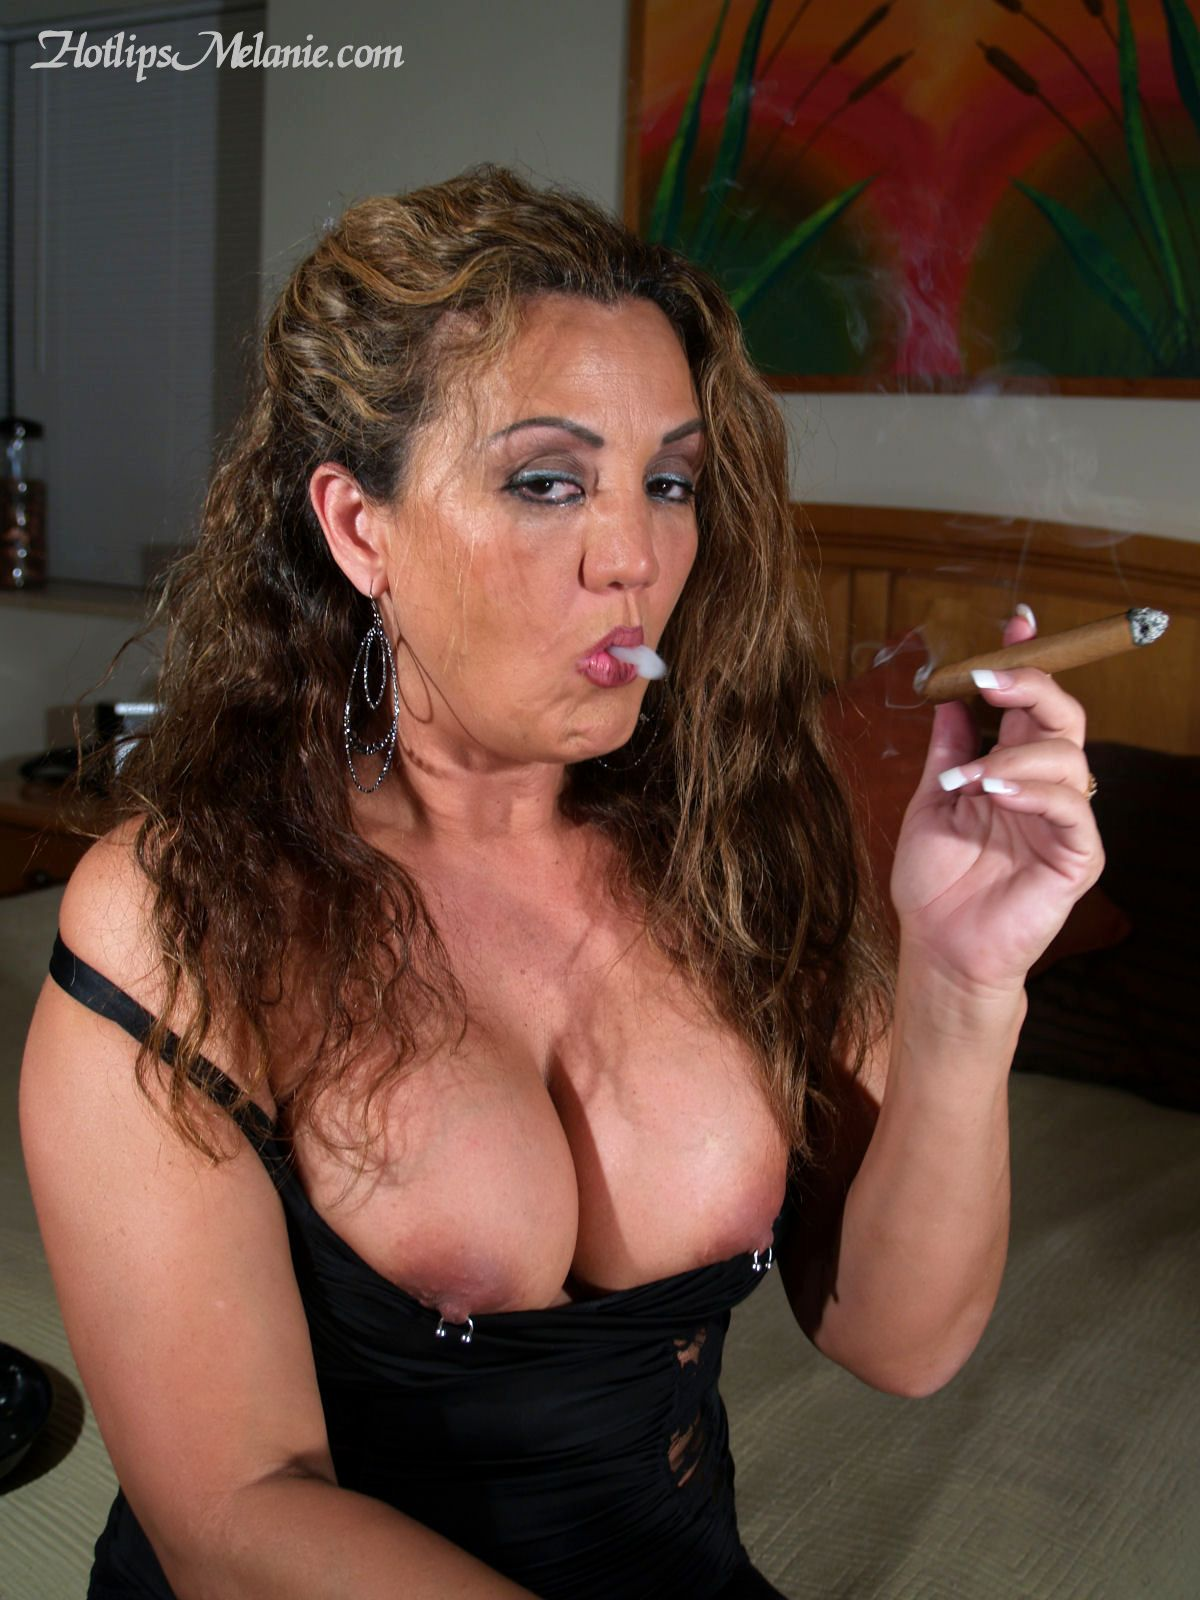 Bigtits Women Smokers Cigars